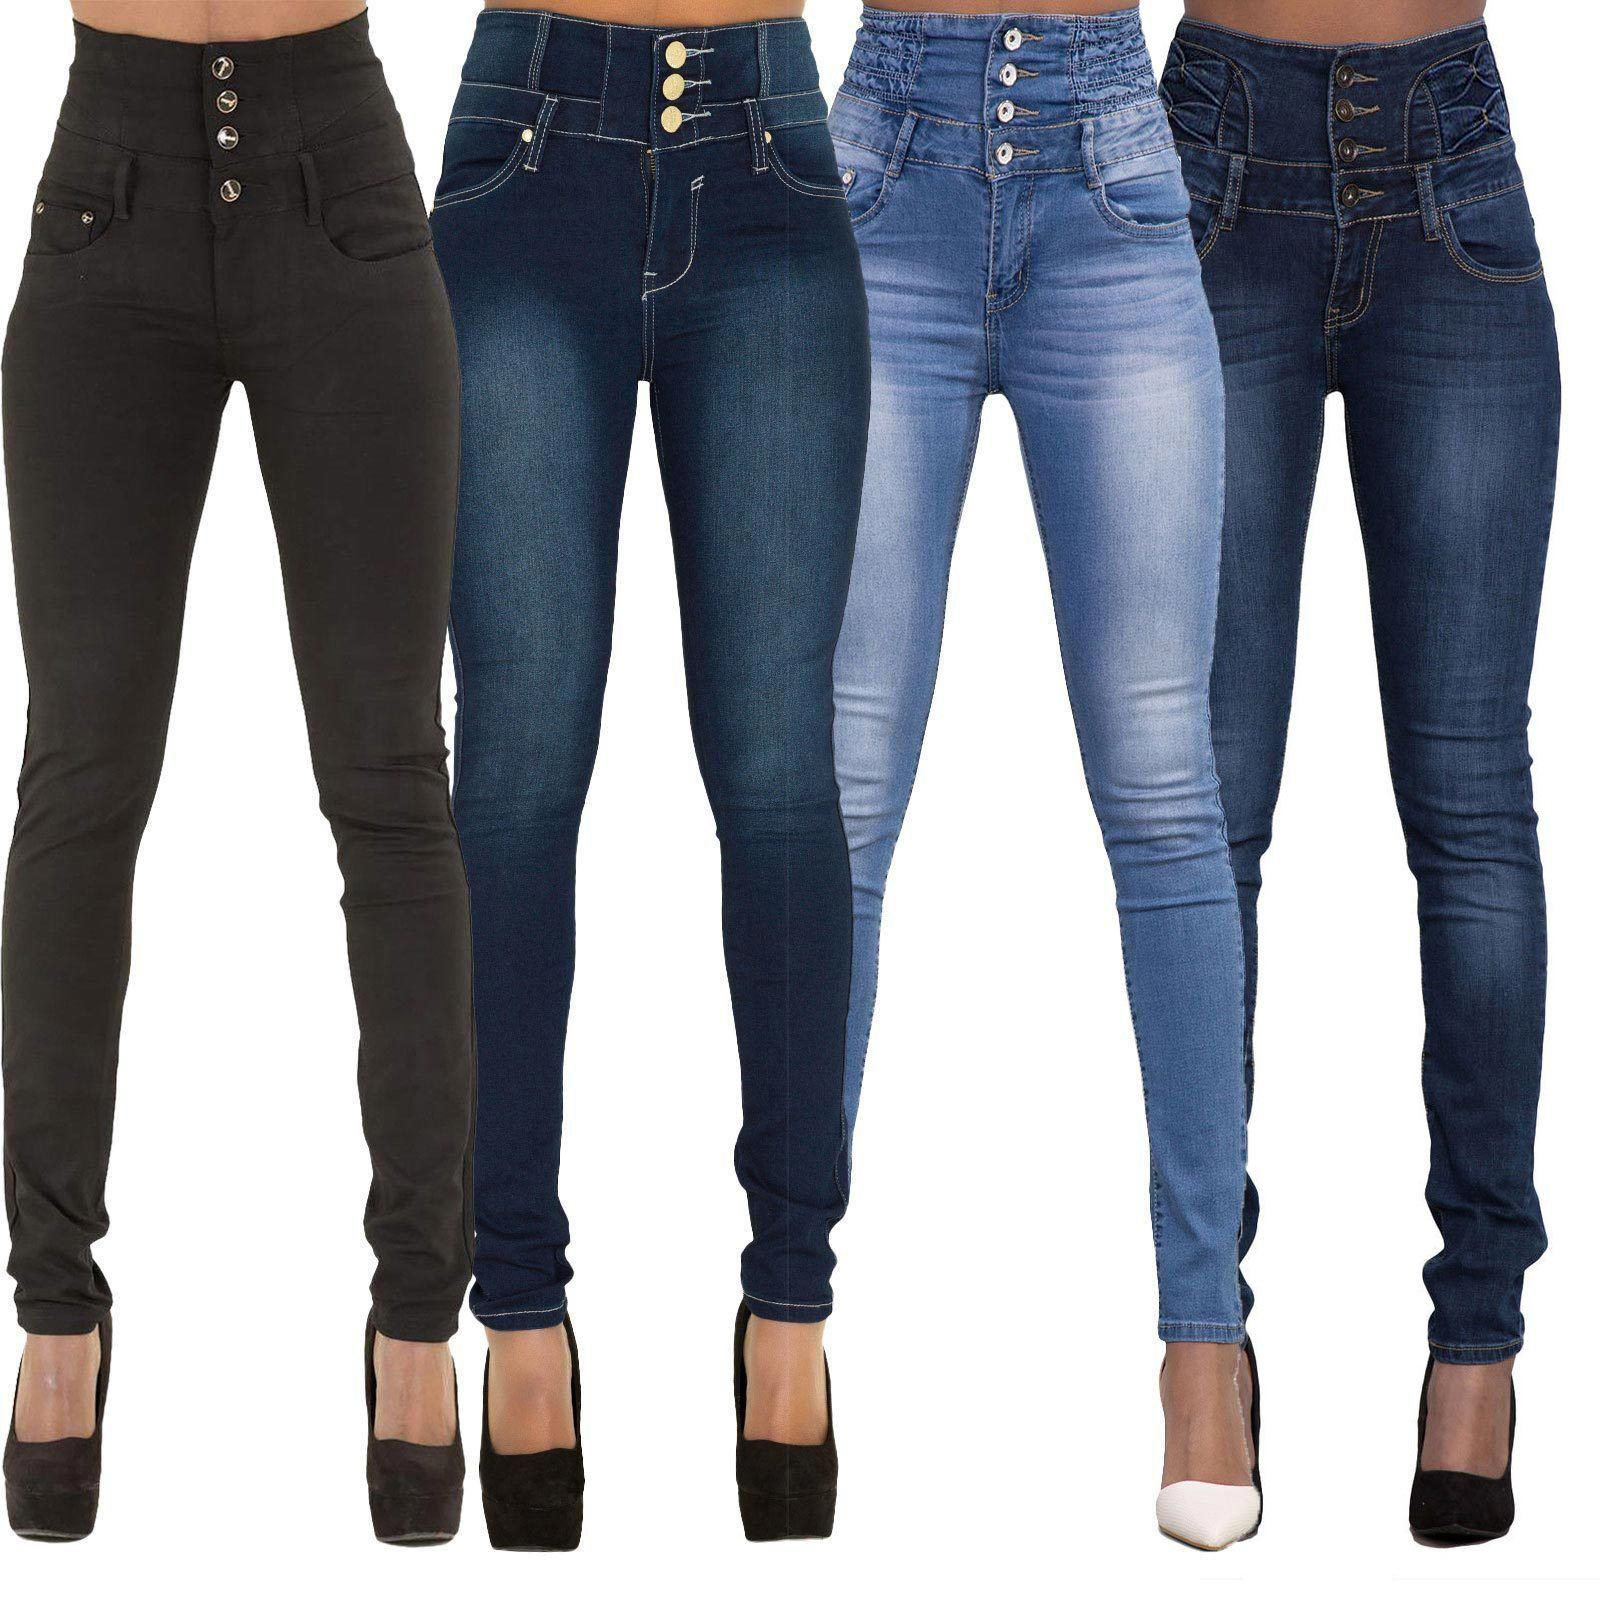 Jeans   for Women Streetwear High Waist Skinny   Jeans   2019 Spring Autumn Woman Single-breasted Pencil Denim Pants Plus Size